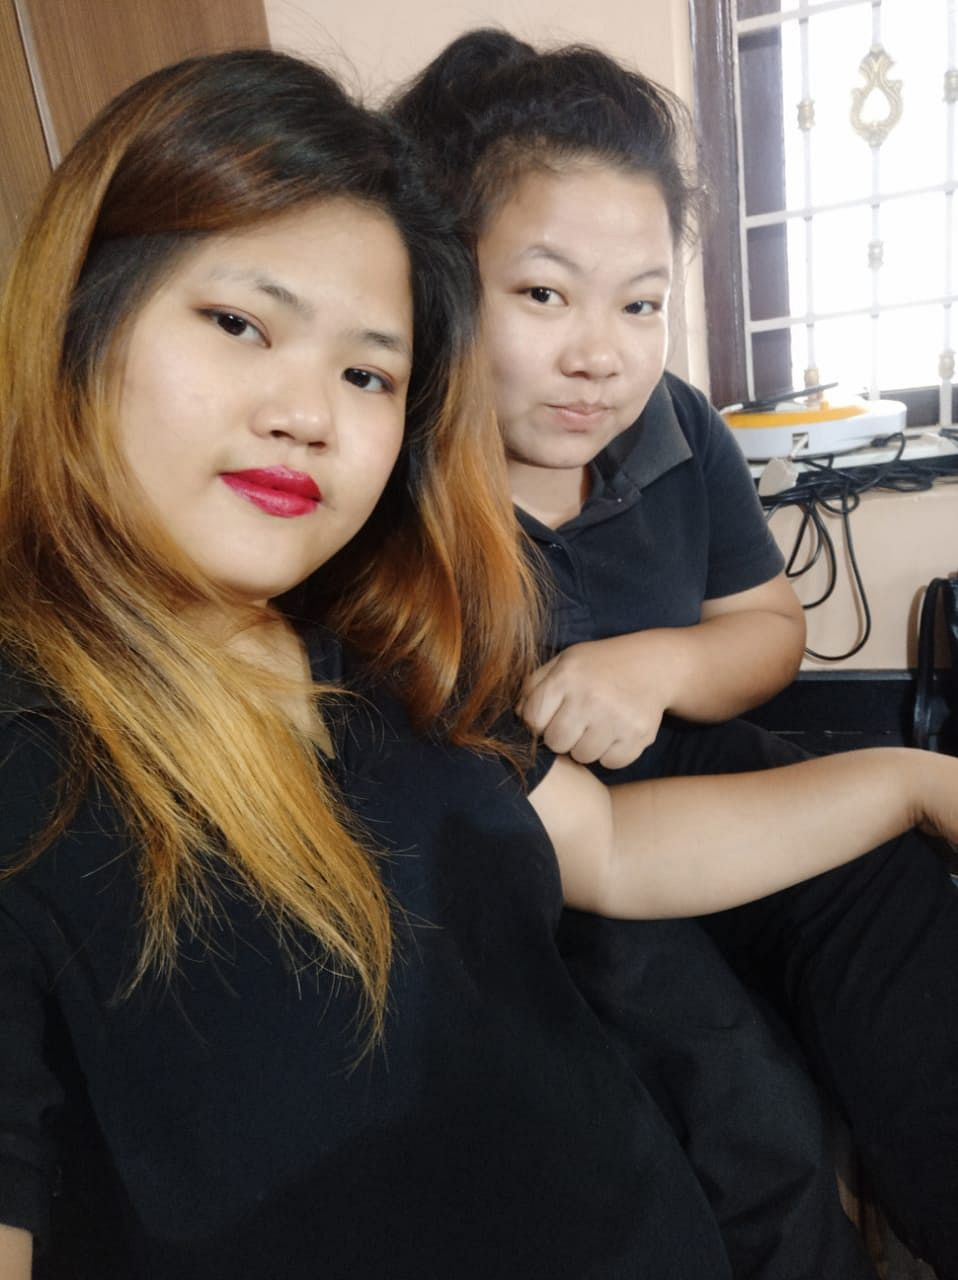 Grace and her colleague at Asian Continental Spa and Salon in Tamil Nadu